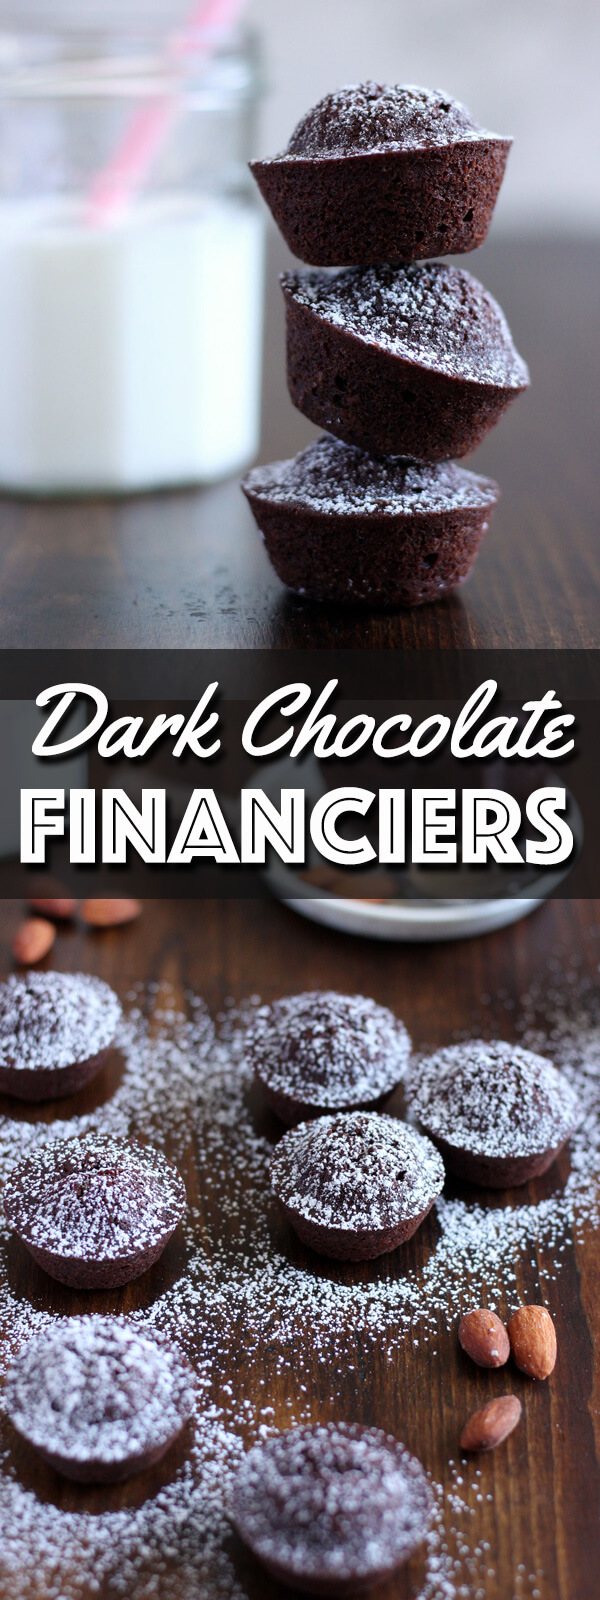 Dark Chocolate Financiers - Wild Wild Whisk